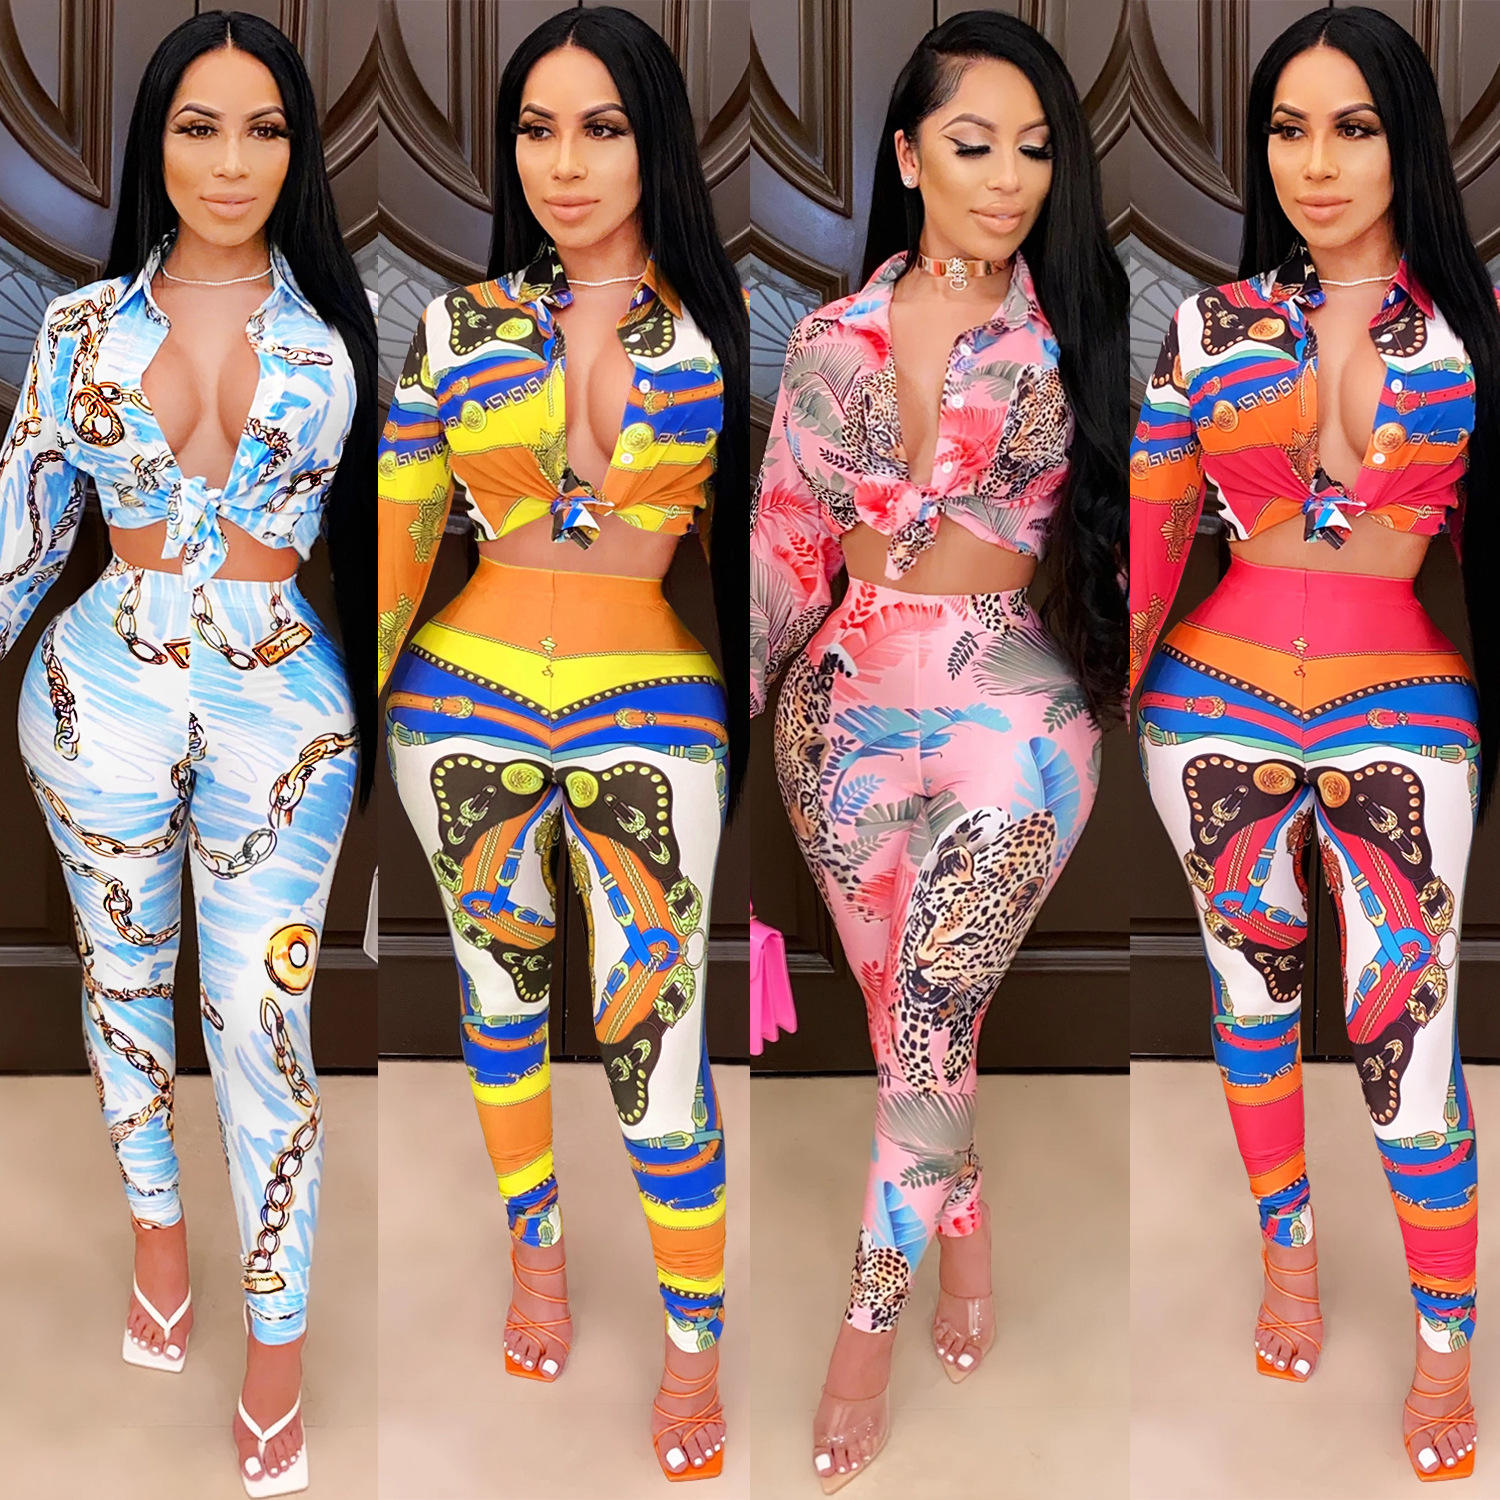 2021 fashion digital printing knot two piece casual set pants set skirt sets women 2 piece outfits